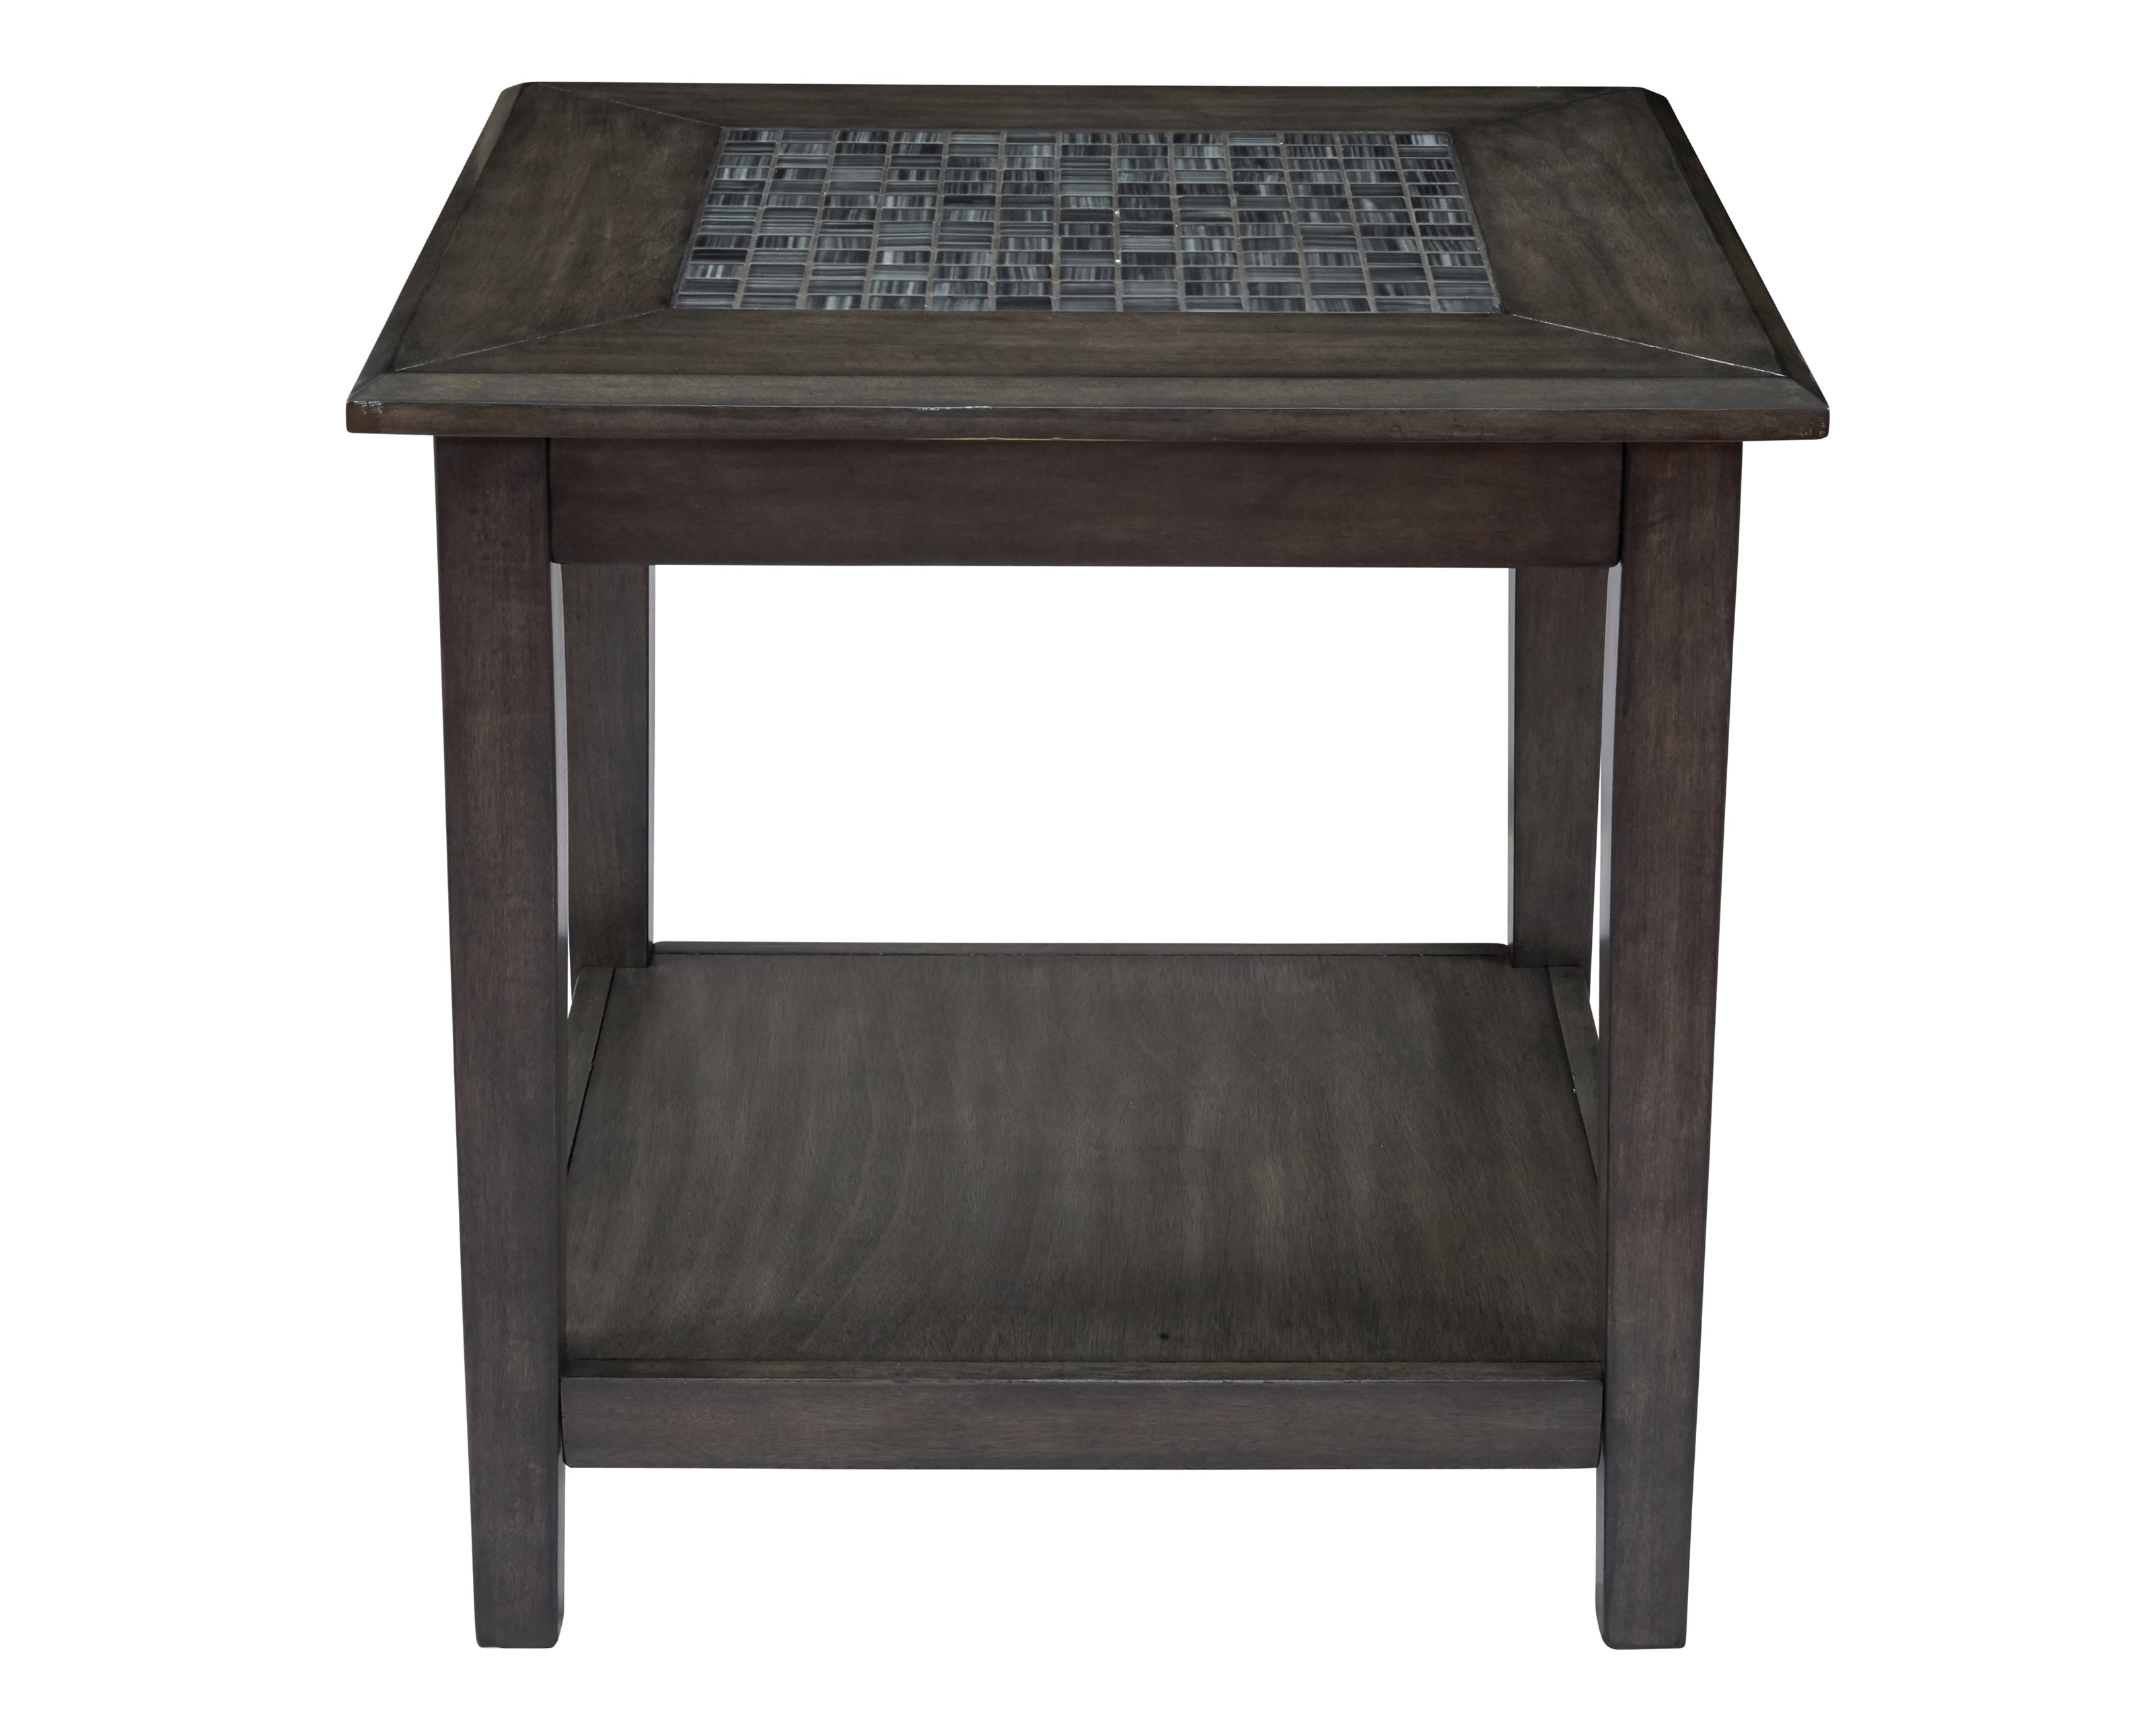 jofran greystone end table rotmans tables products color grey mosaic accent round outside cover outdoor and chairs side tablecloth glass coffee making wood dining room target